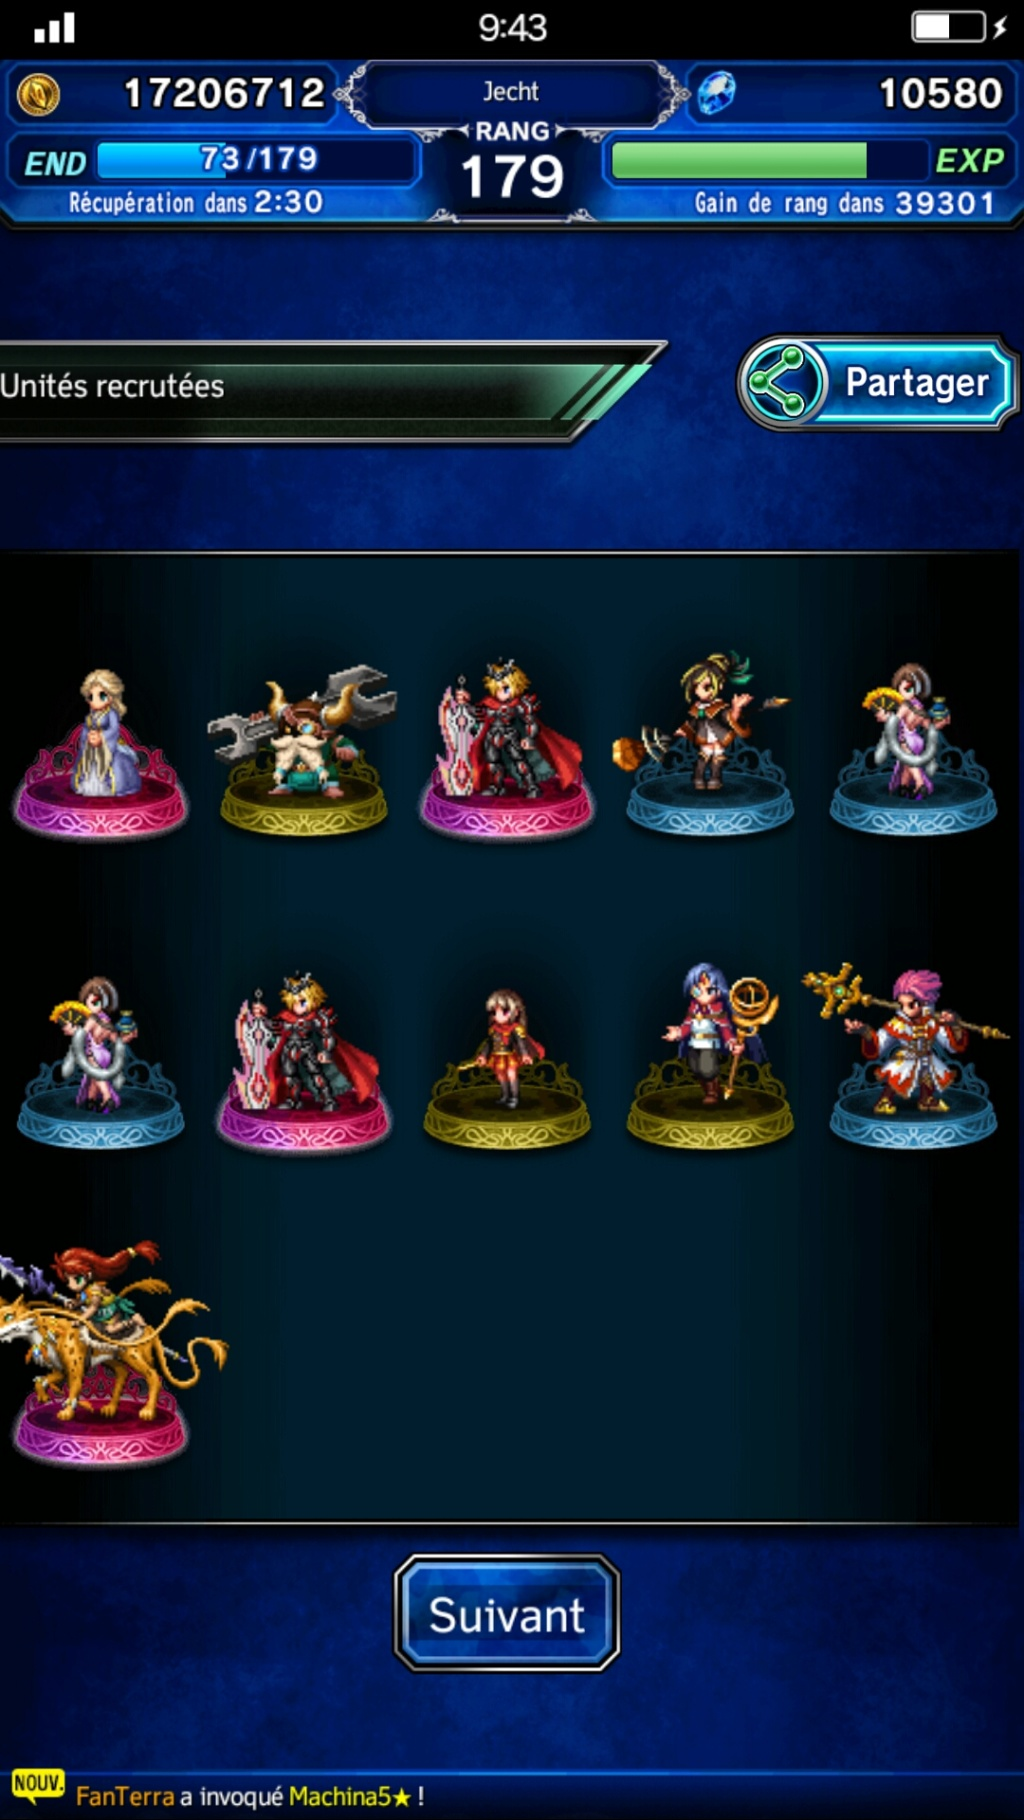 Invocations du moment - FFBE (AKRain) - du 07/11 au 21/11/19 - Page 4 Scree104